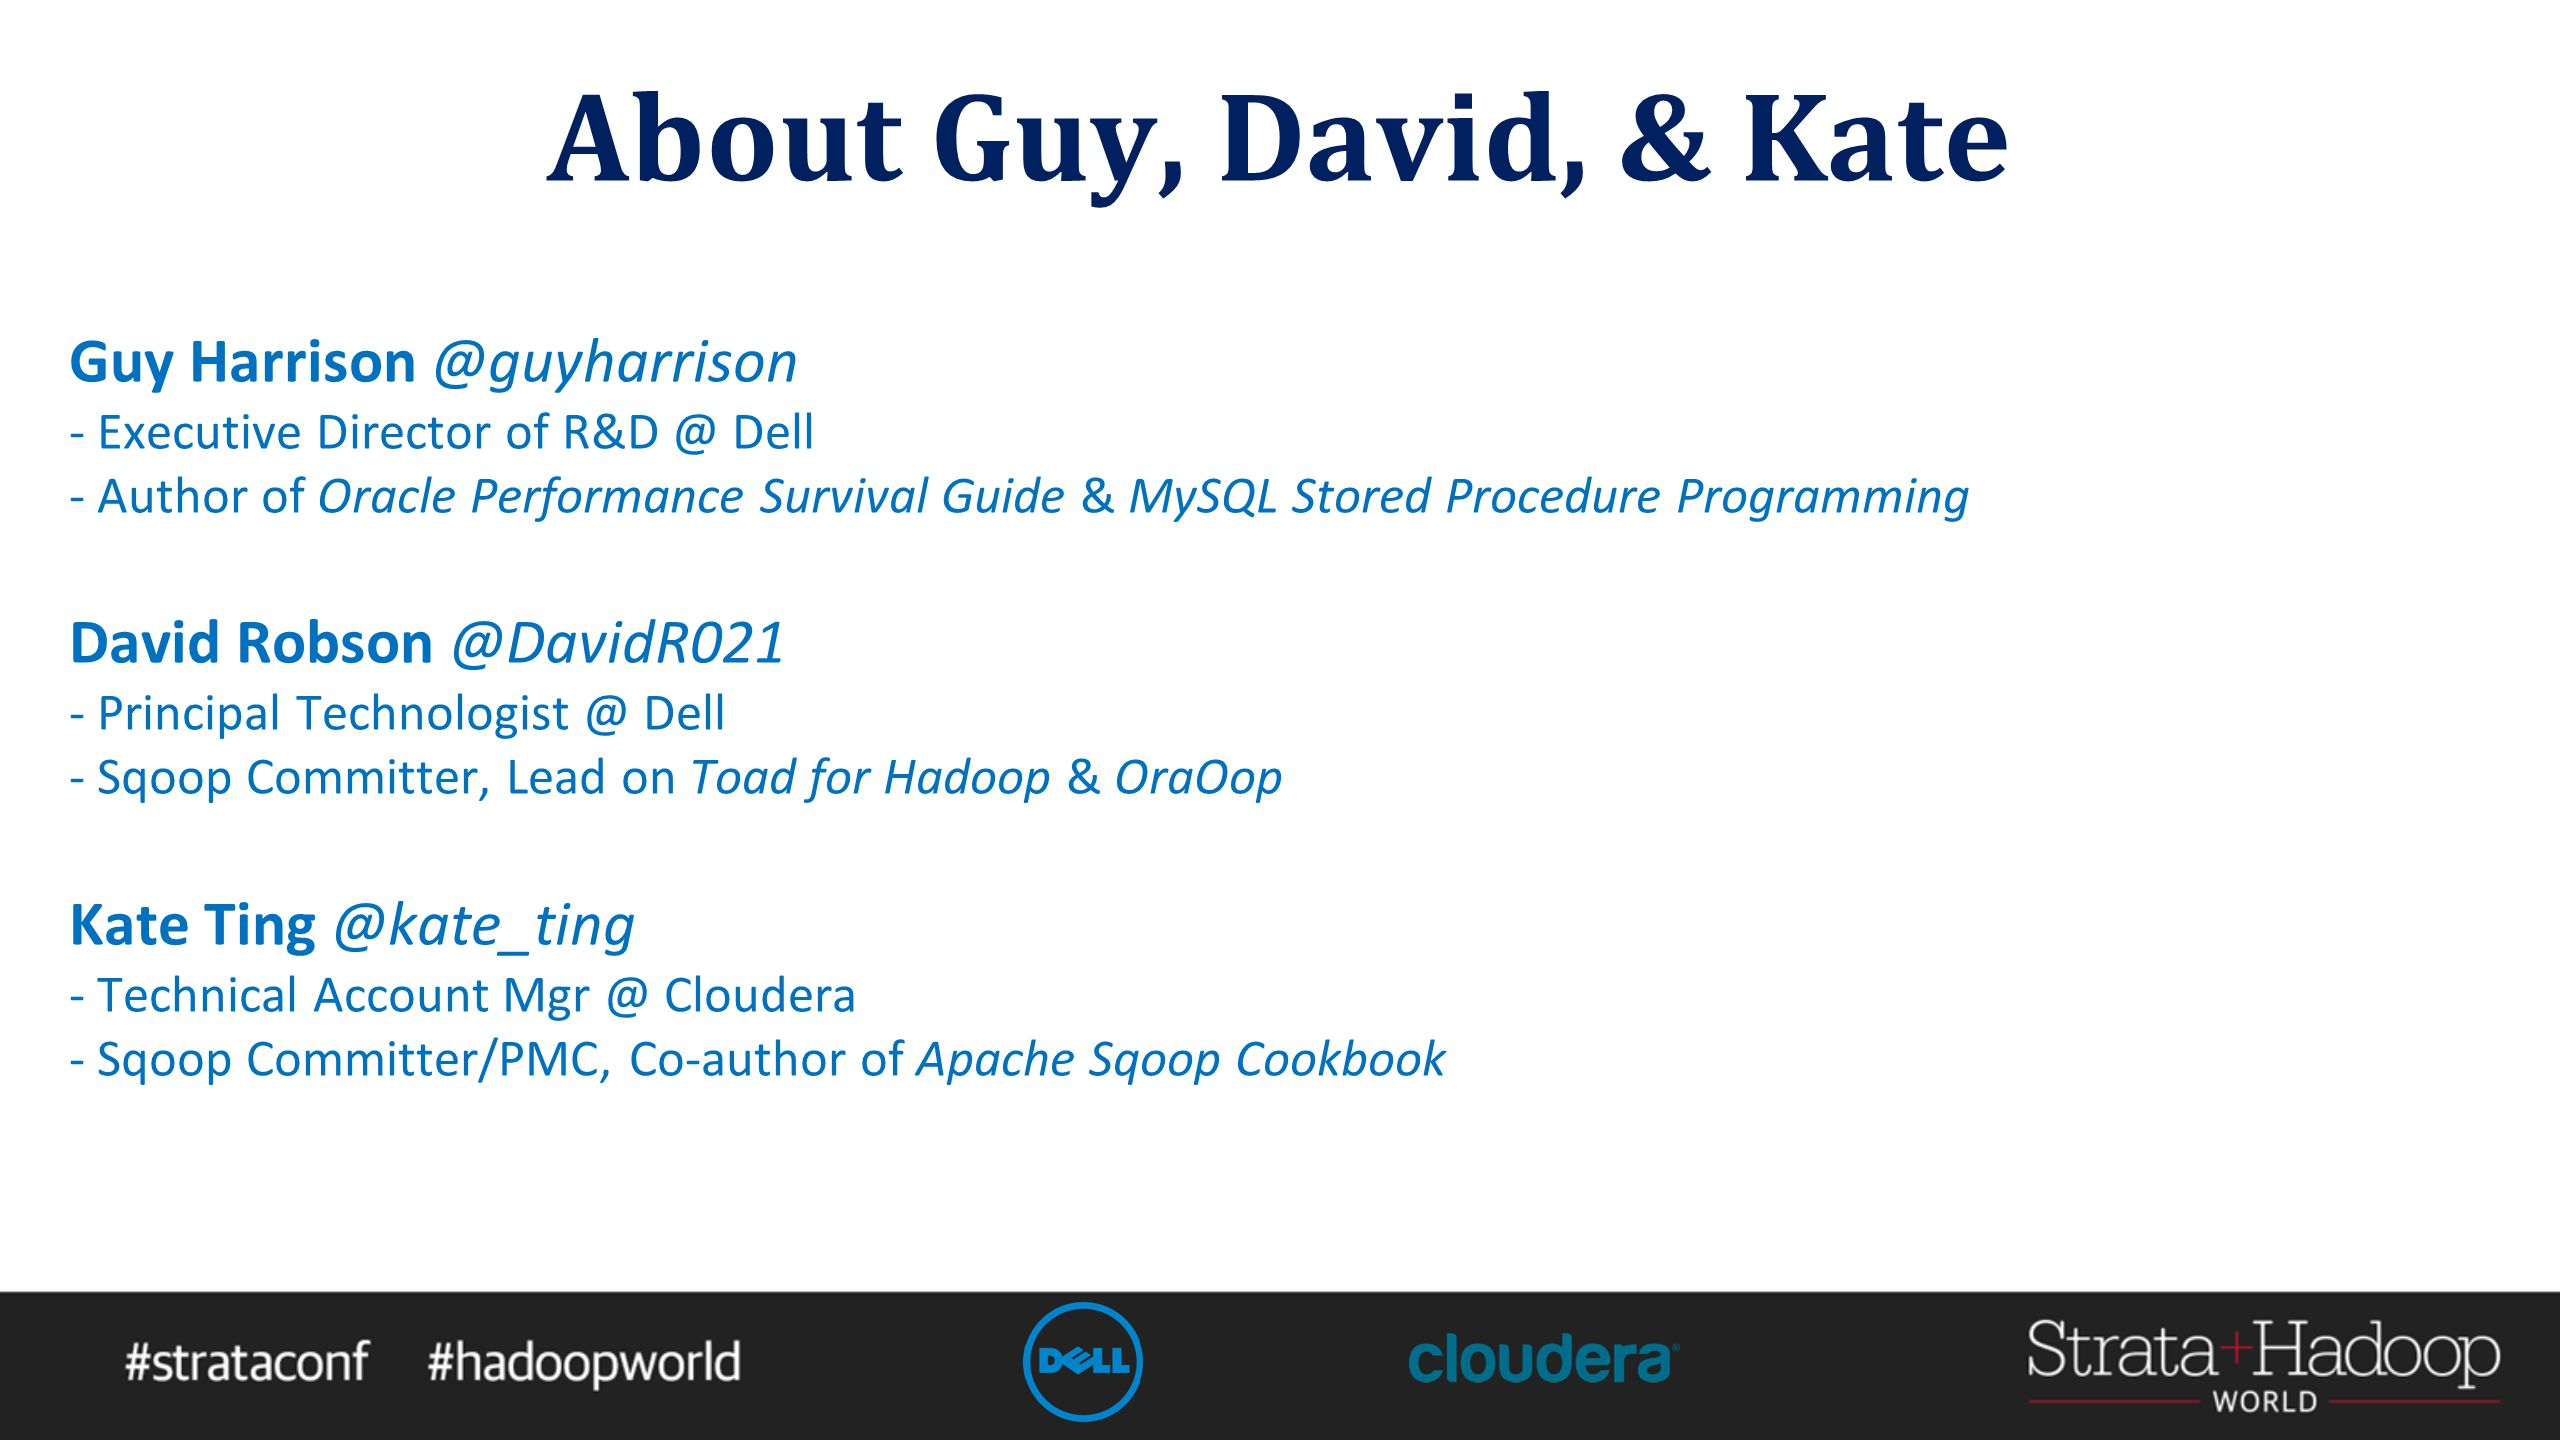 About Guy, David, & Kate Guy Harrison @guyharrison - Executive Director of R&D @ Dell - Author of Oracle Performance Survival Guide & MySQL Stored Procedure Programming David Robson @DavidR021 - Principal Technologist @ Dell - Sqoop Committer, Lead on Toad for Hadoop & OraOop Kate Ting @kate_ting - Technical Account Mgr @ Cloudera - Sqoop Committer/PMC, Co-author of Apache Sqoop Cookbook